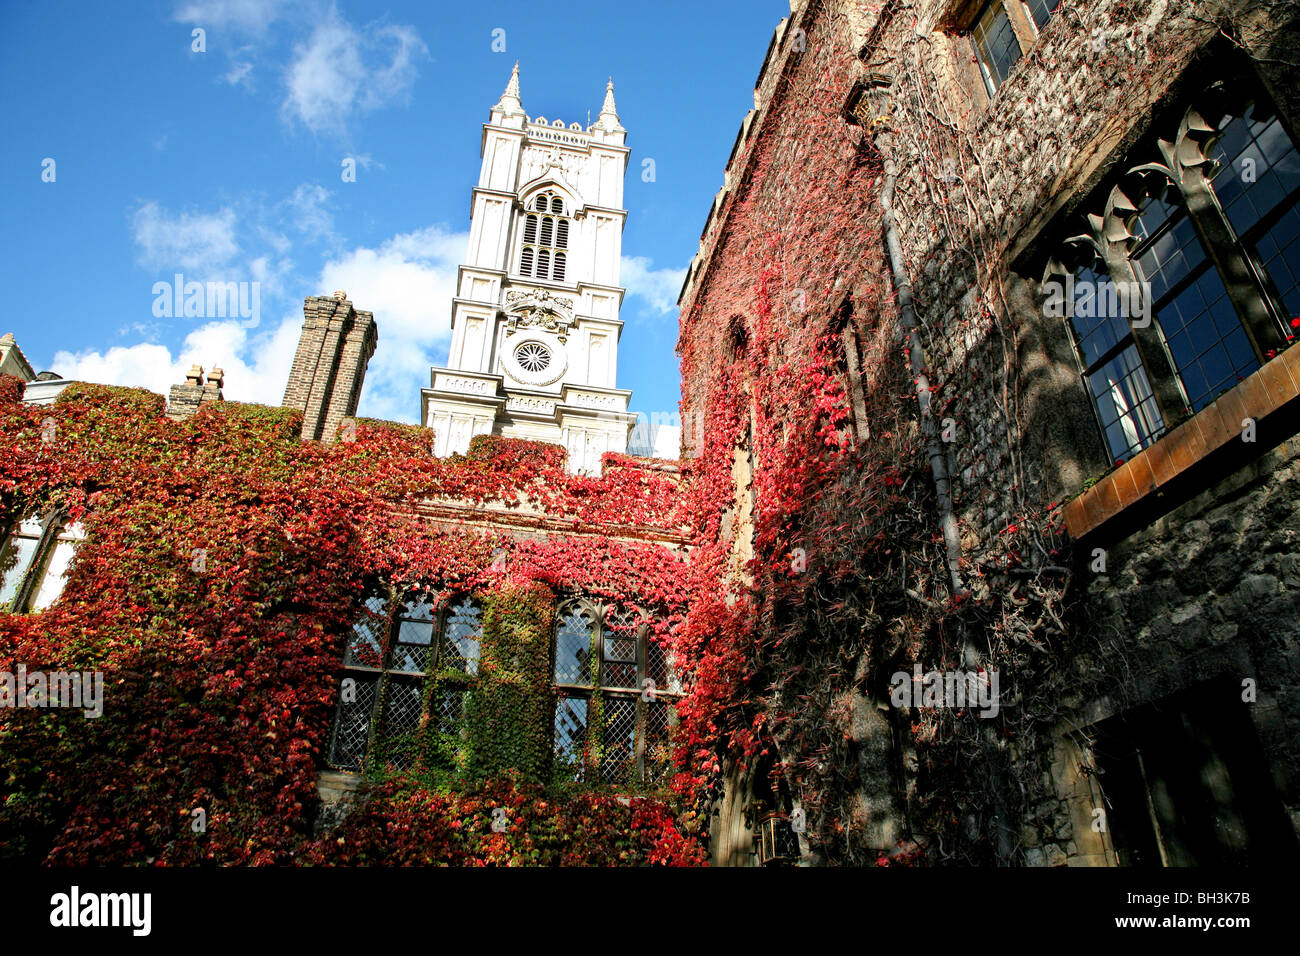 Dean's Yard, Westminster - Stock Image